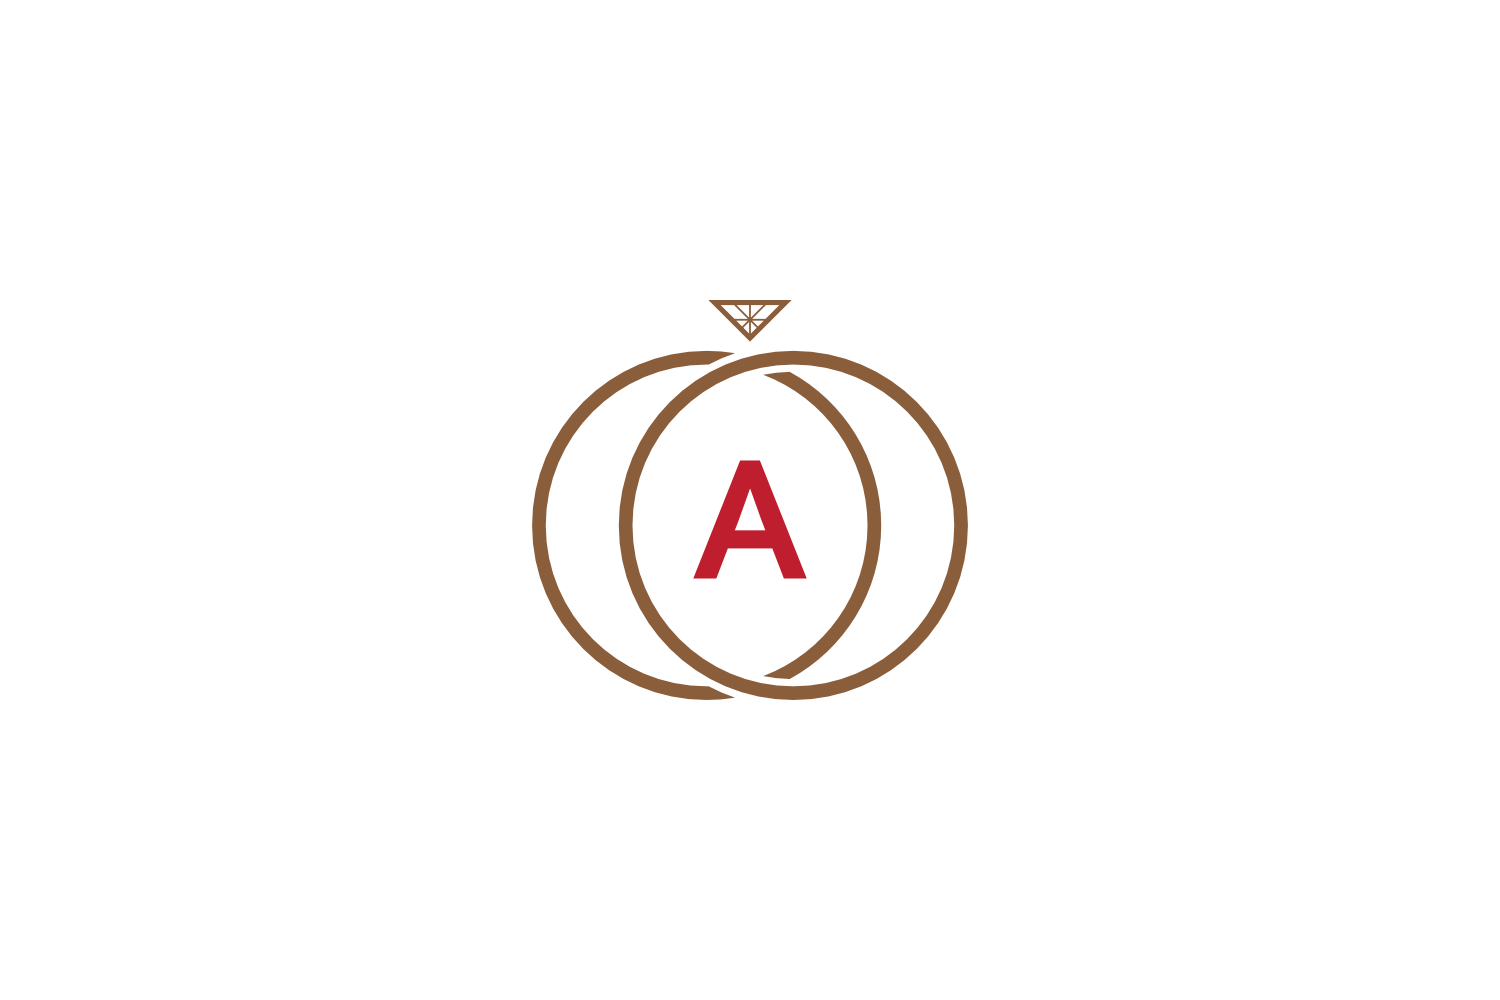 a letter ring diamond logo example image 1